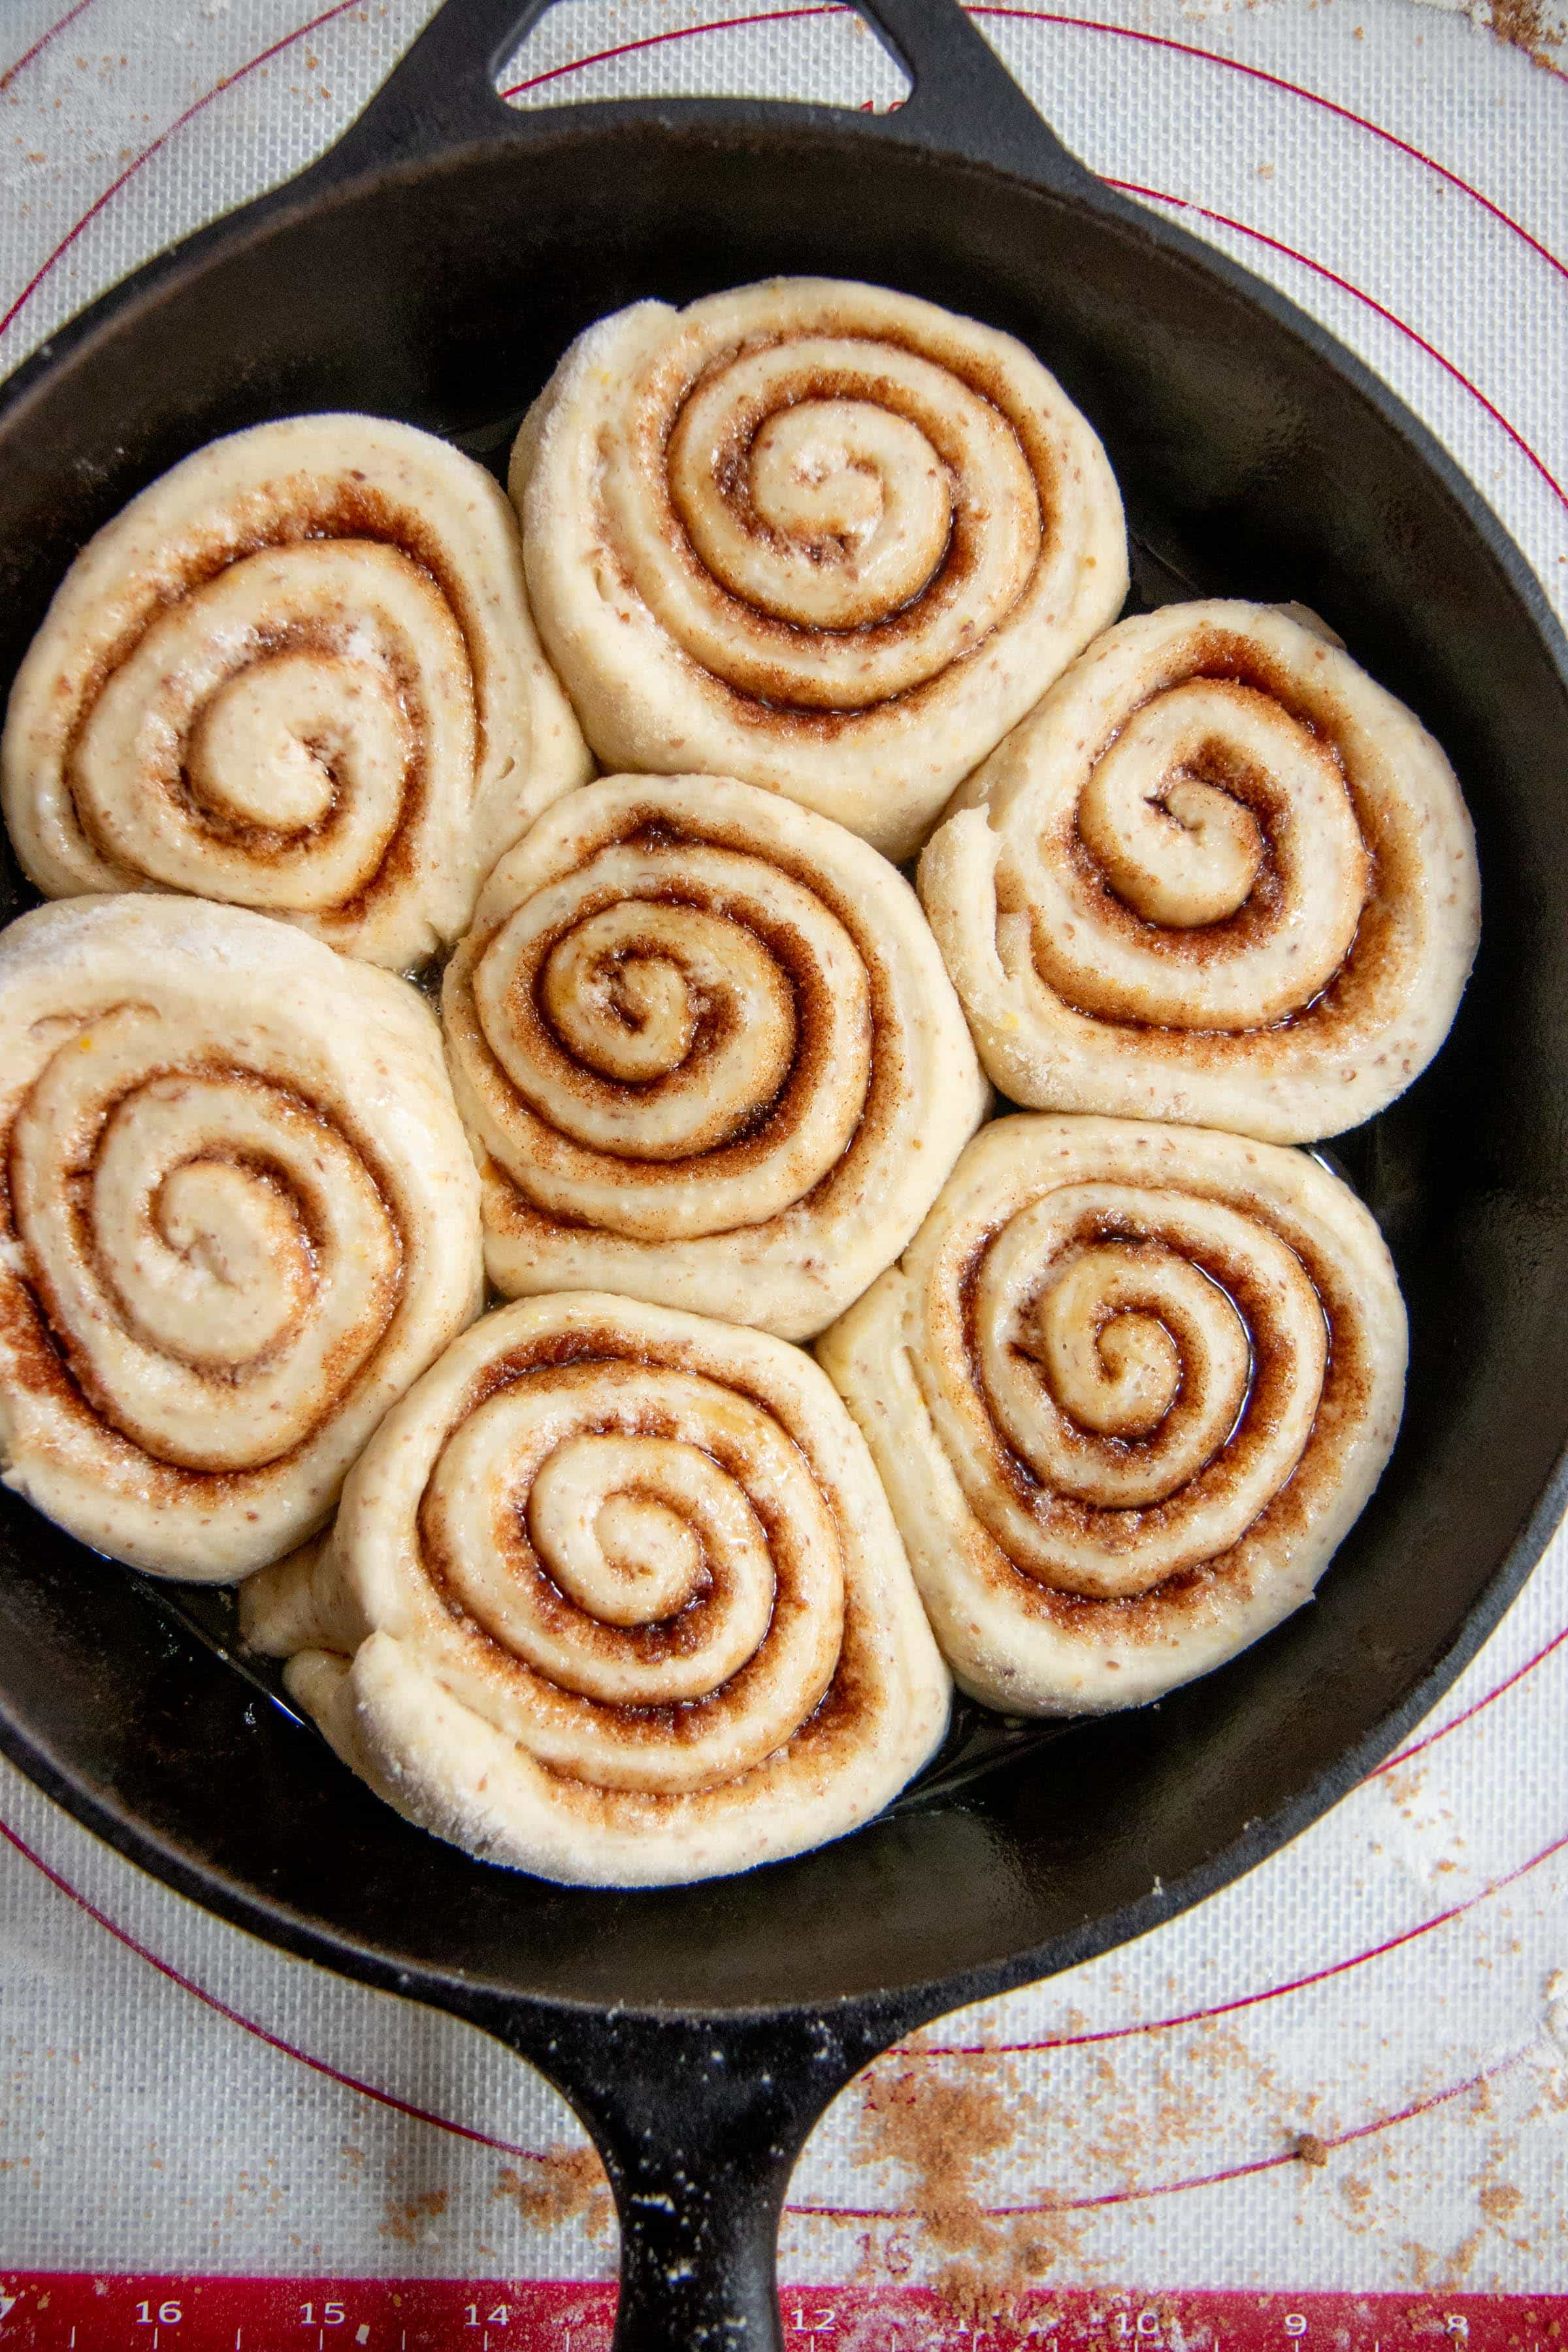 Unbaked Make-Ahead Vegan Cinnamon Rolls nestled in a cast iron skillet, ready to be baked